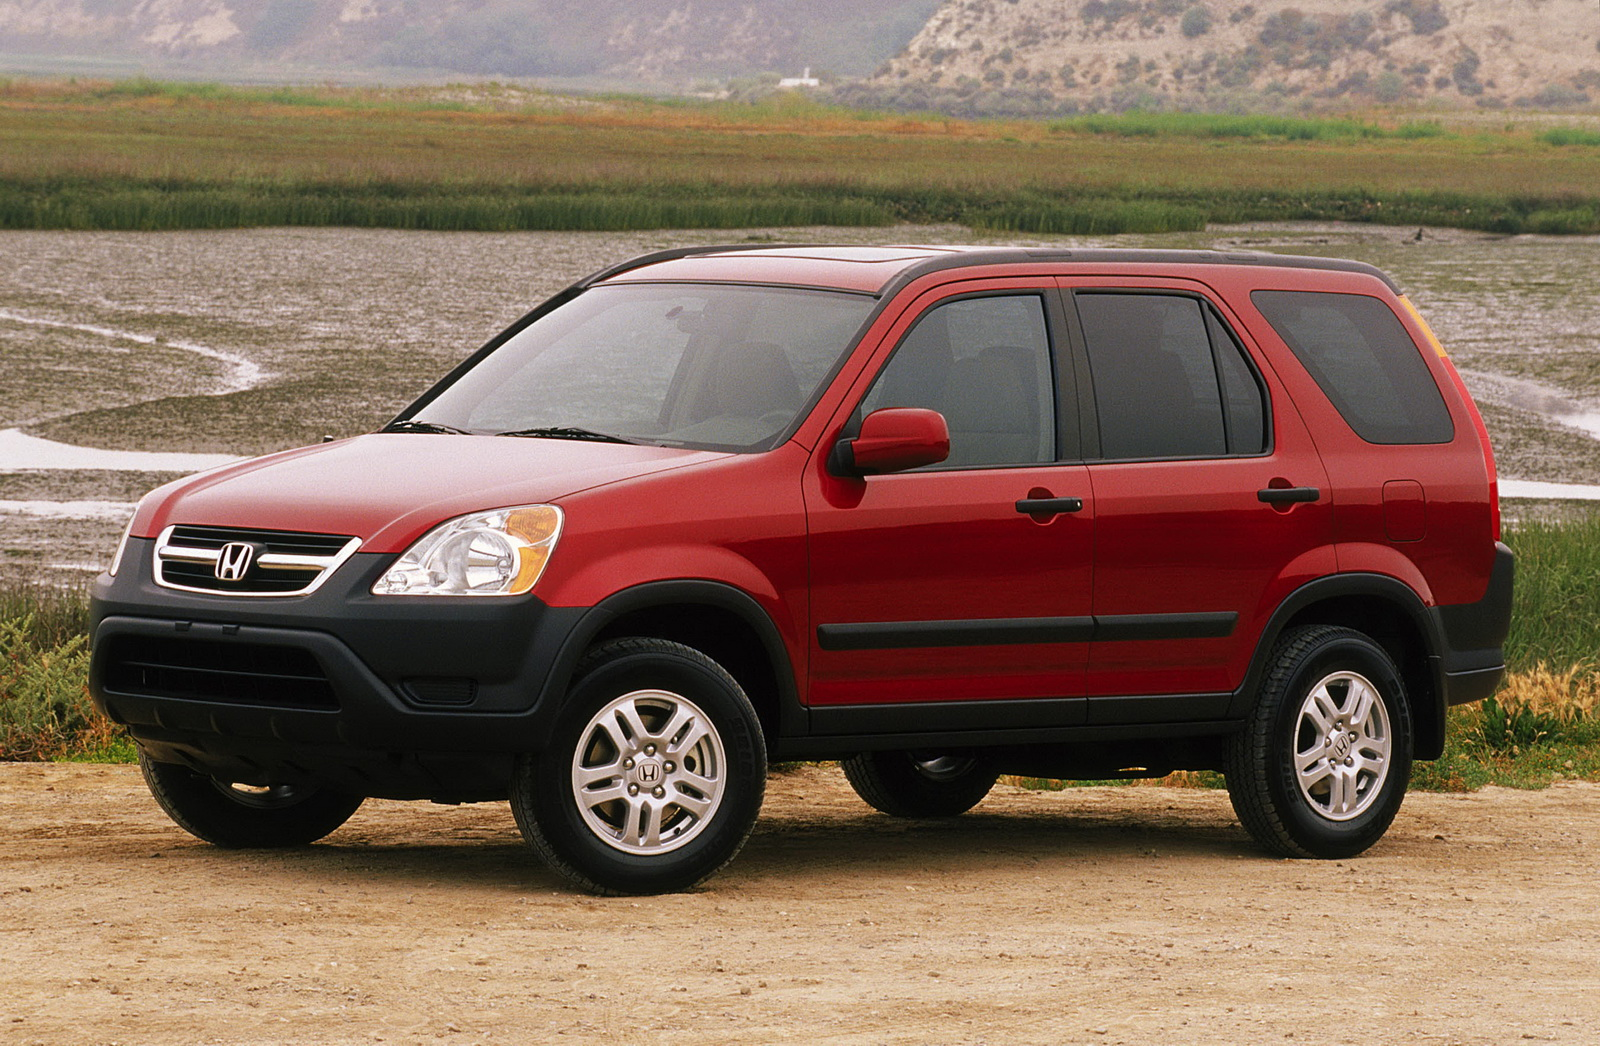 honda adds 2003 2005 cr v models to the takata airbag recall. Black Bedroom Furniture Sets. Home Design Ideas